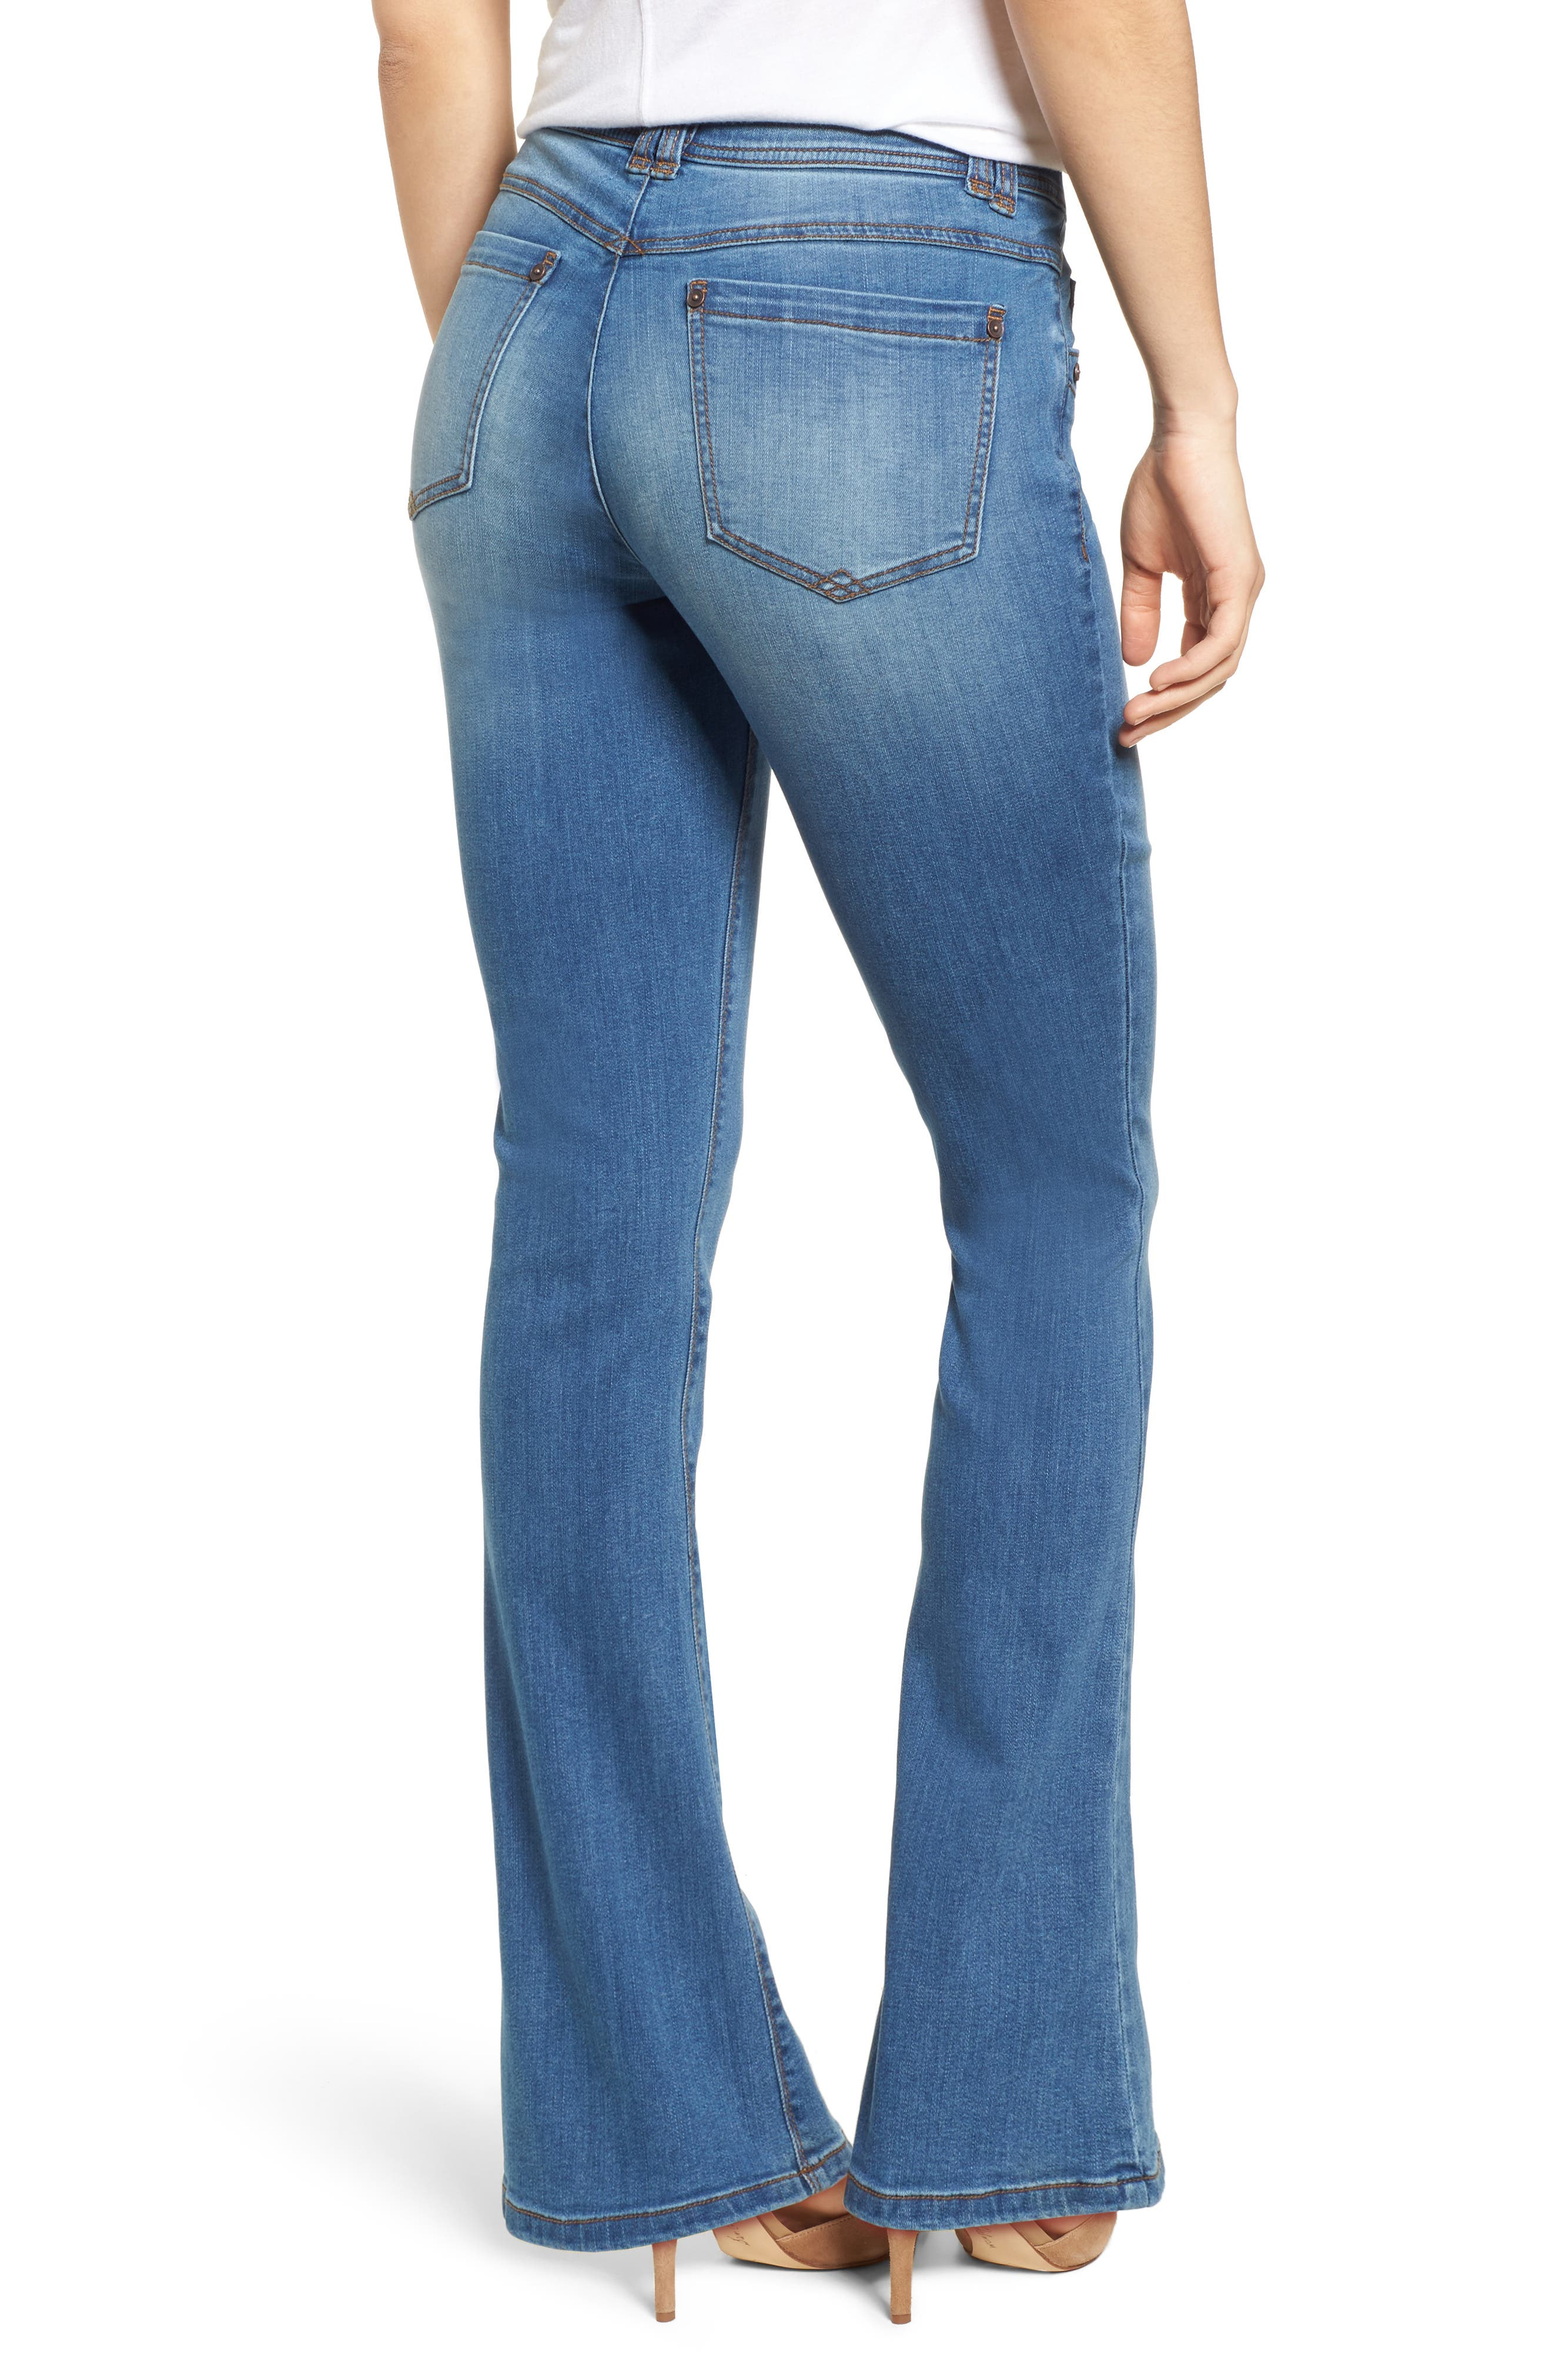 Ab-solution Itty Bitty Bootcut Jeans,                             Alternate thumbnail 2, color,                             LIGHT BLUE